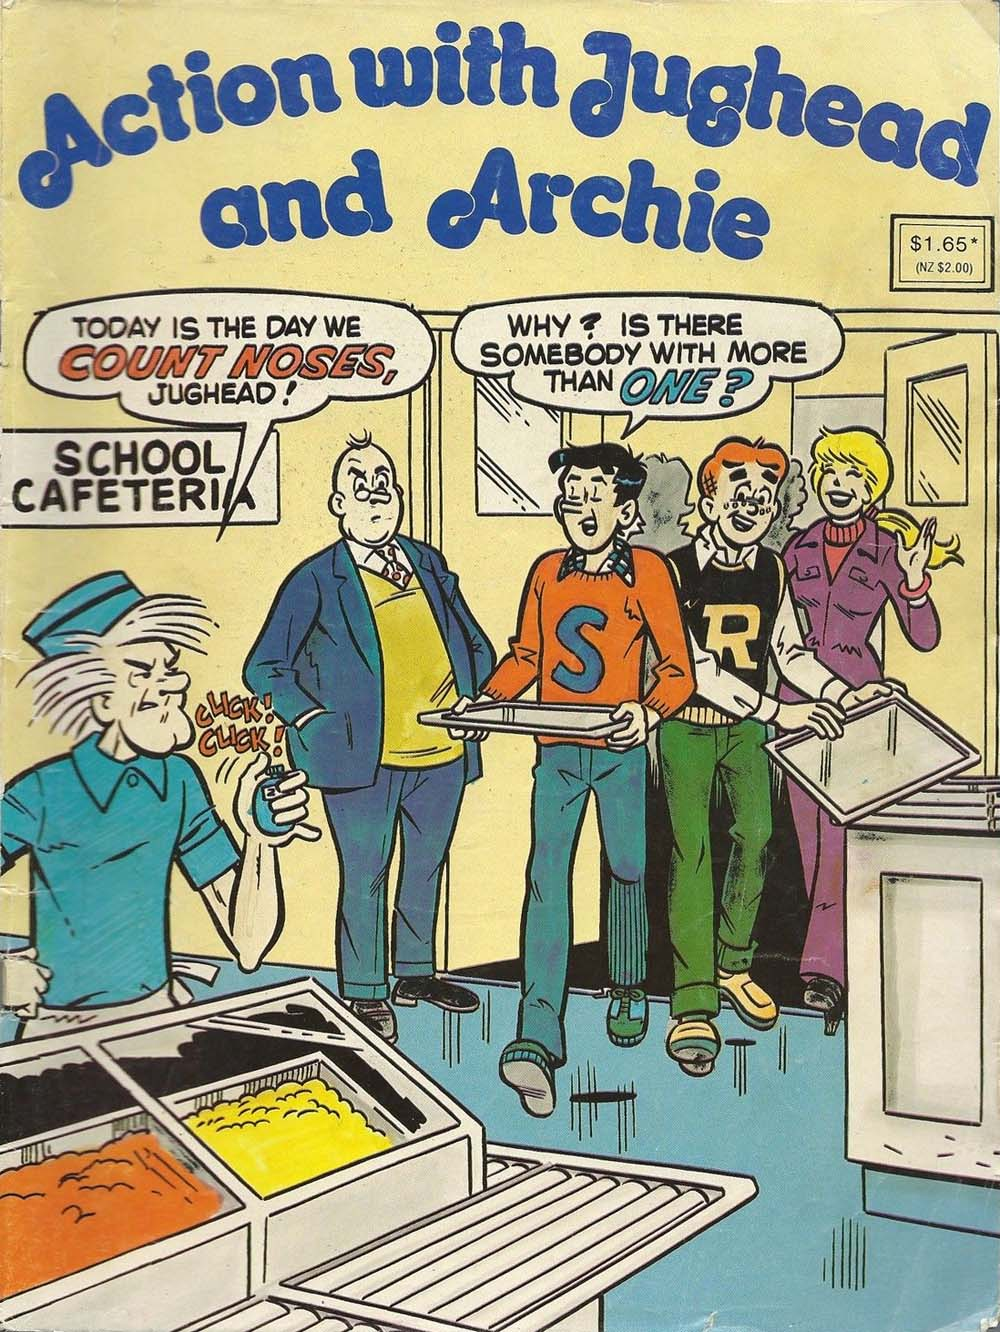 Action with Jughead and Archie